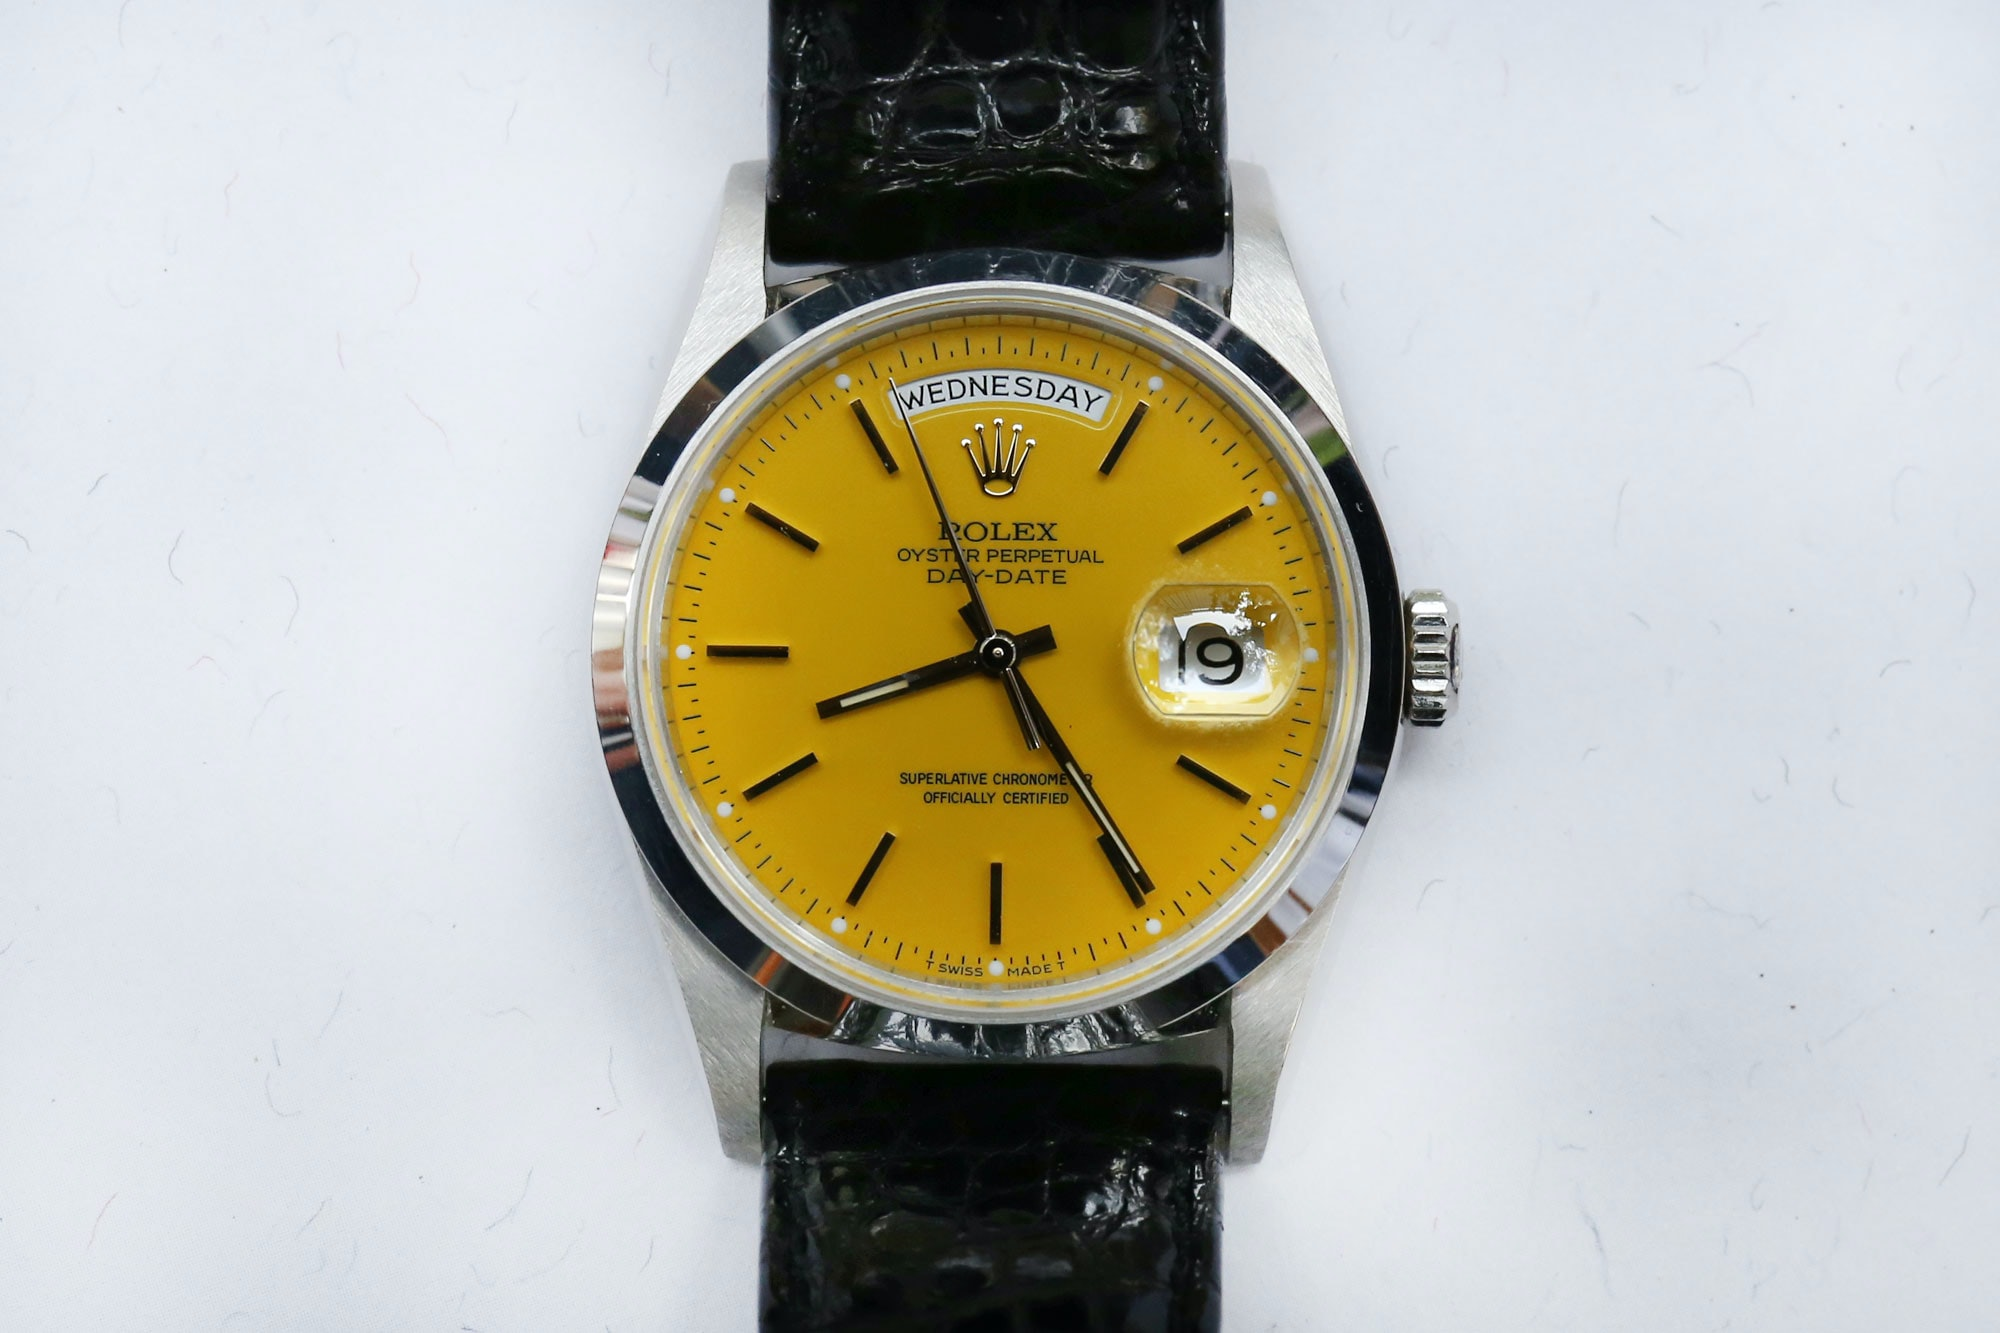 rolex day-date yellow stella platinum Just Because: A Rare Look Inside The Incredible Collection Of Mohammed Seddiqi At Dubai Watch Week Just Because: A Rare Look Inside The Incredible Collection Of Mohammed Seddiqi At Dubai Watch Week seddiqi 1